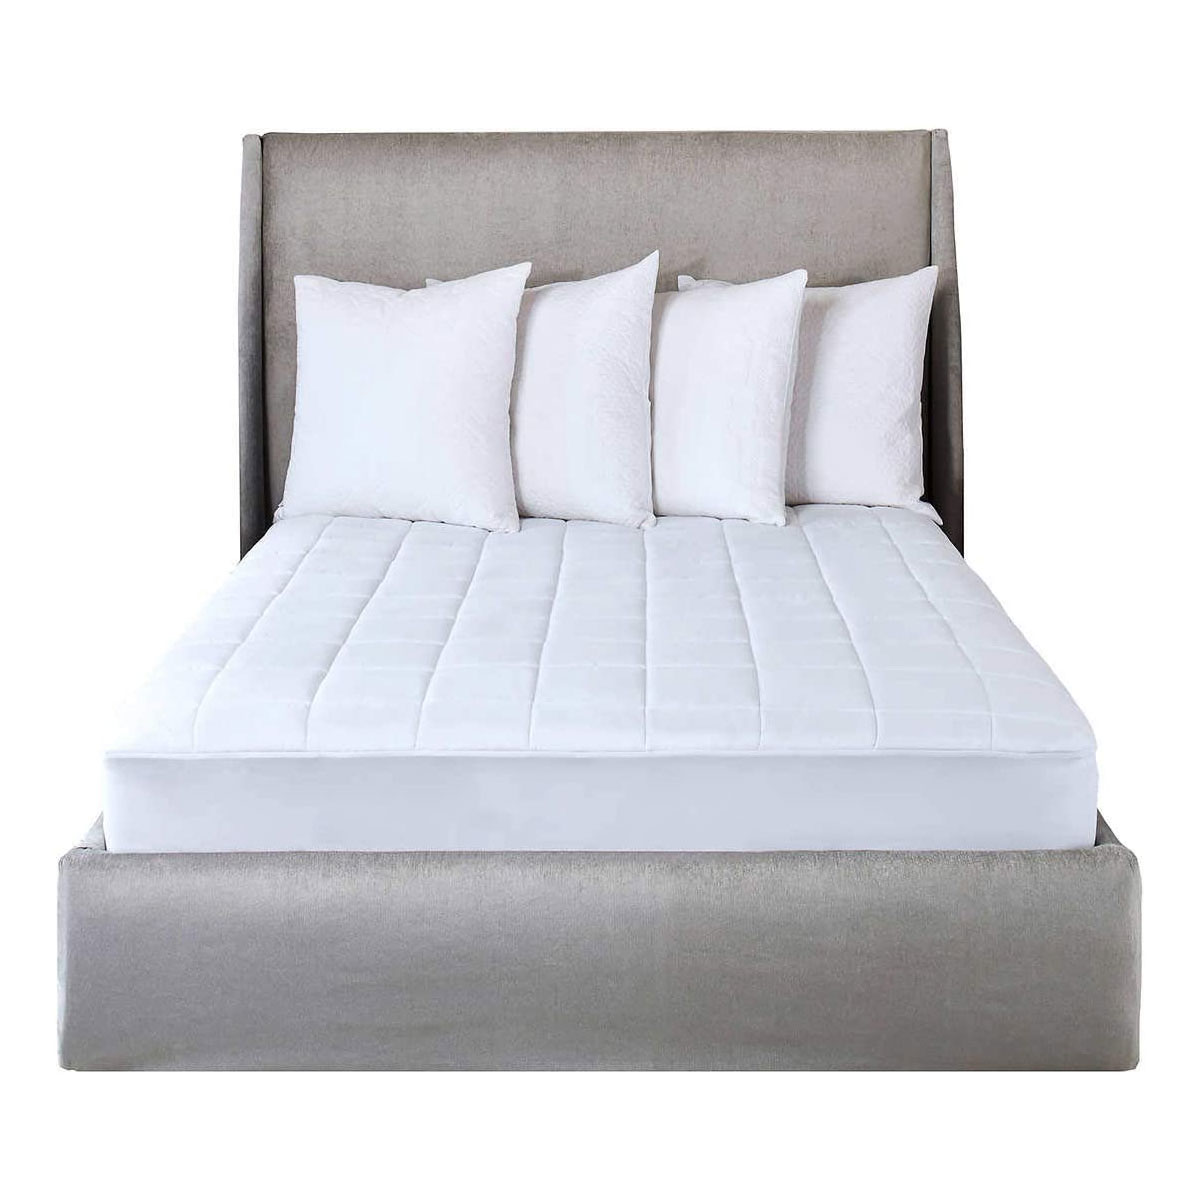 Queen 60X 80 10 Heat Settings Sunbeam Selecttouch Premium Electric Heated Mattress Pad 100 Percent Quilted Cotton Top